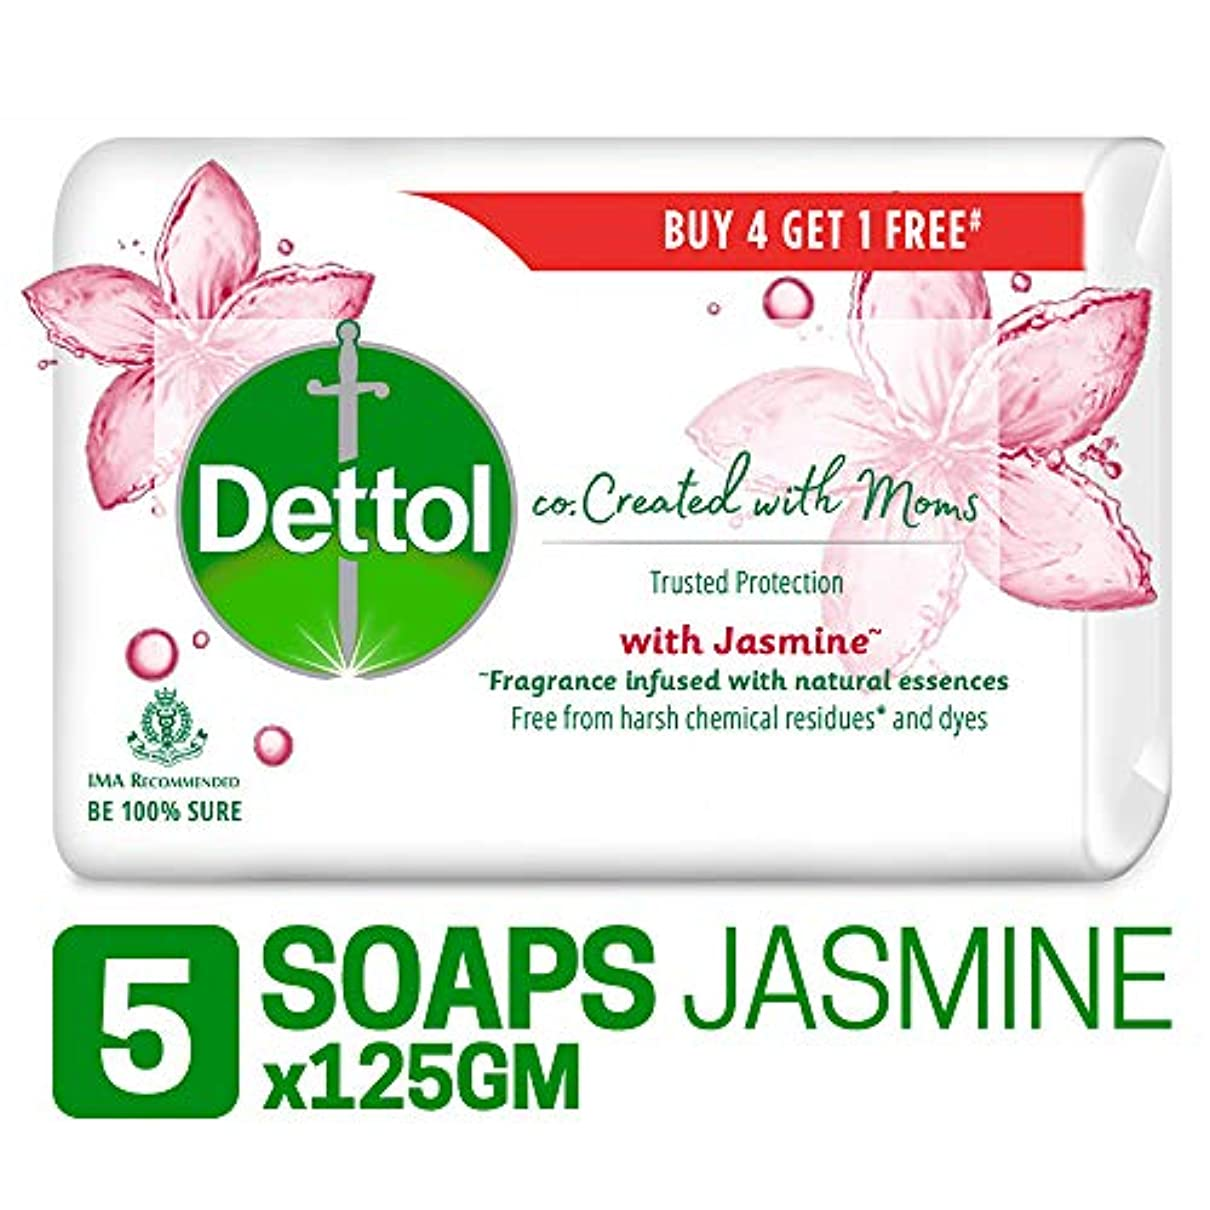 Dettol Co-created with moms Jasmine Bathing Soap, 125gm (Buy 4 Get 1 Free)